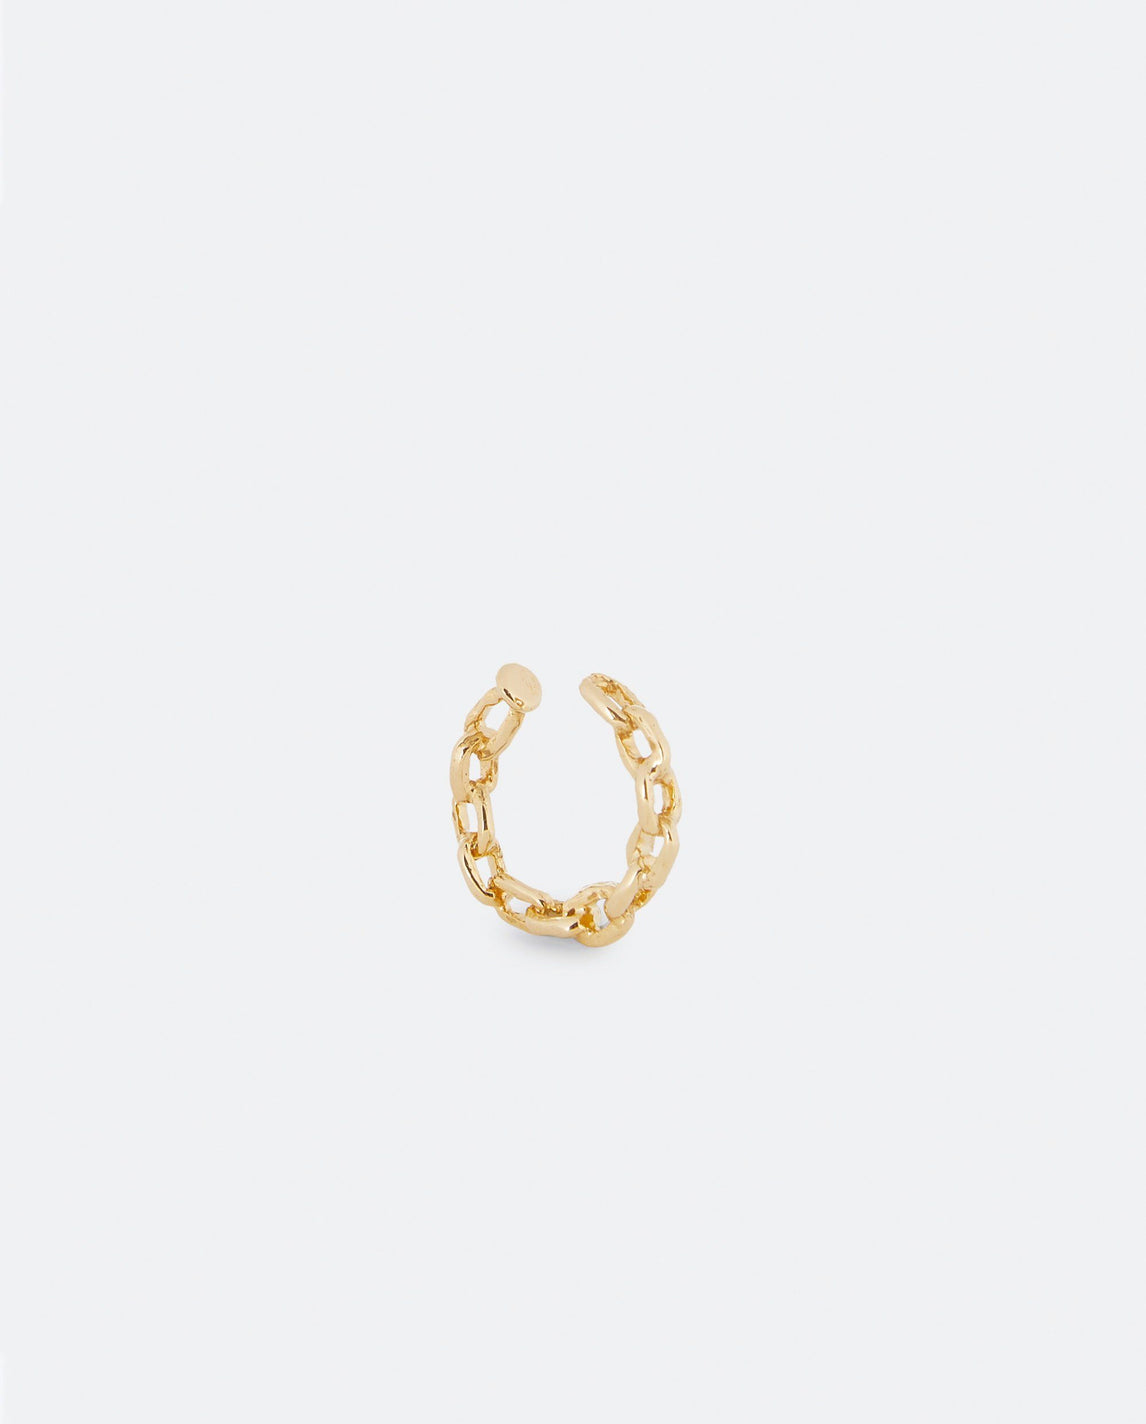 Chain Ear Cuff - Gold UNISEX PATCHARAVIPA